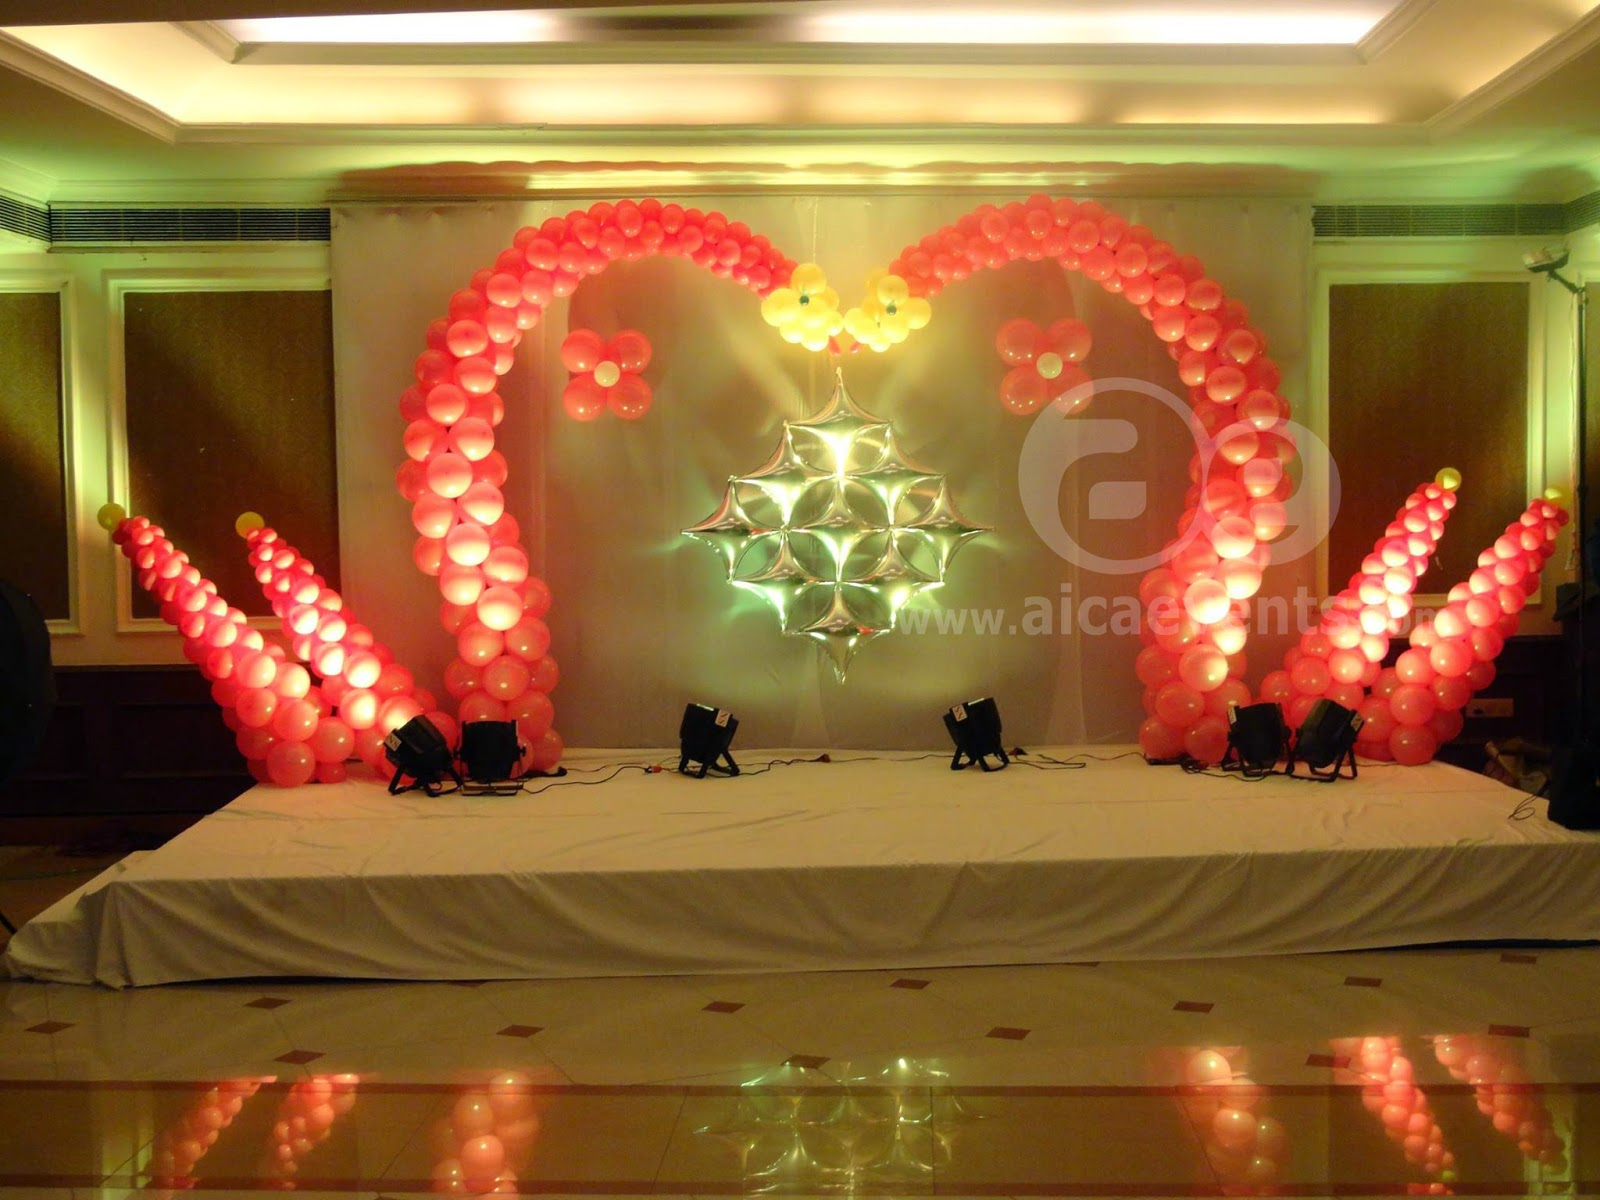 Balloon decoration for stage images for Balloon decoration equipment